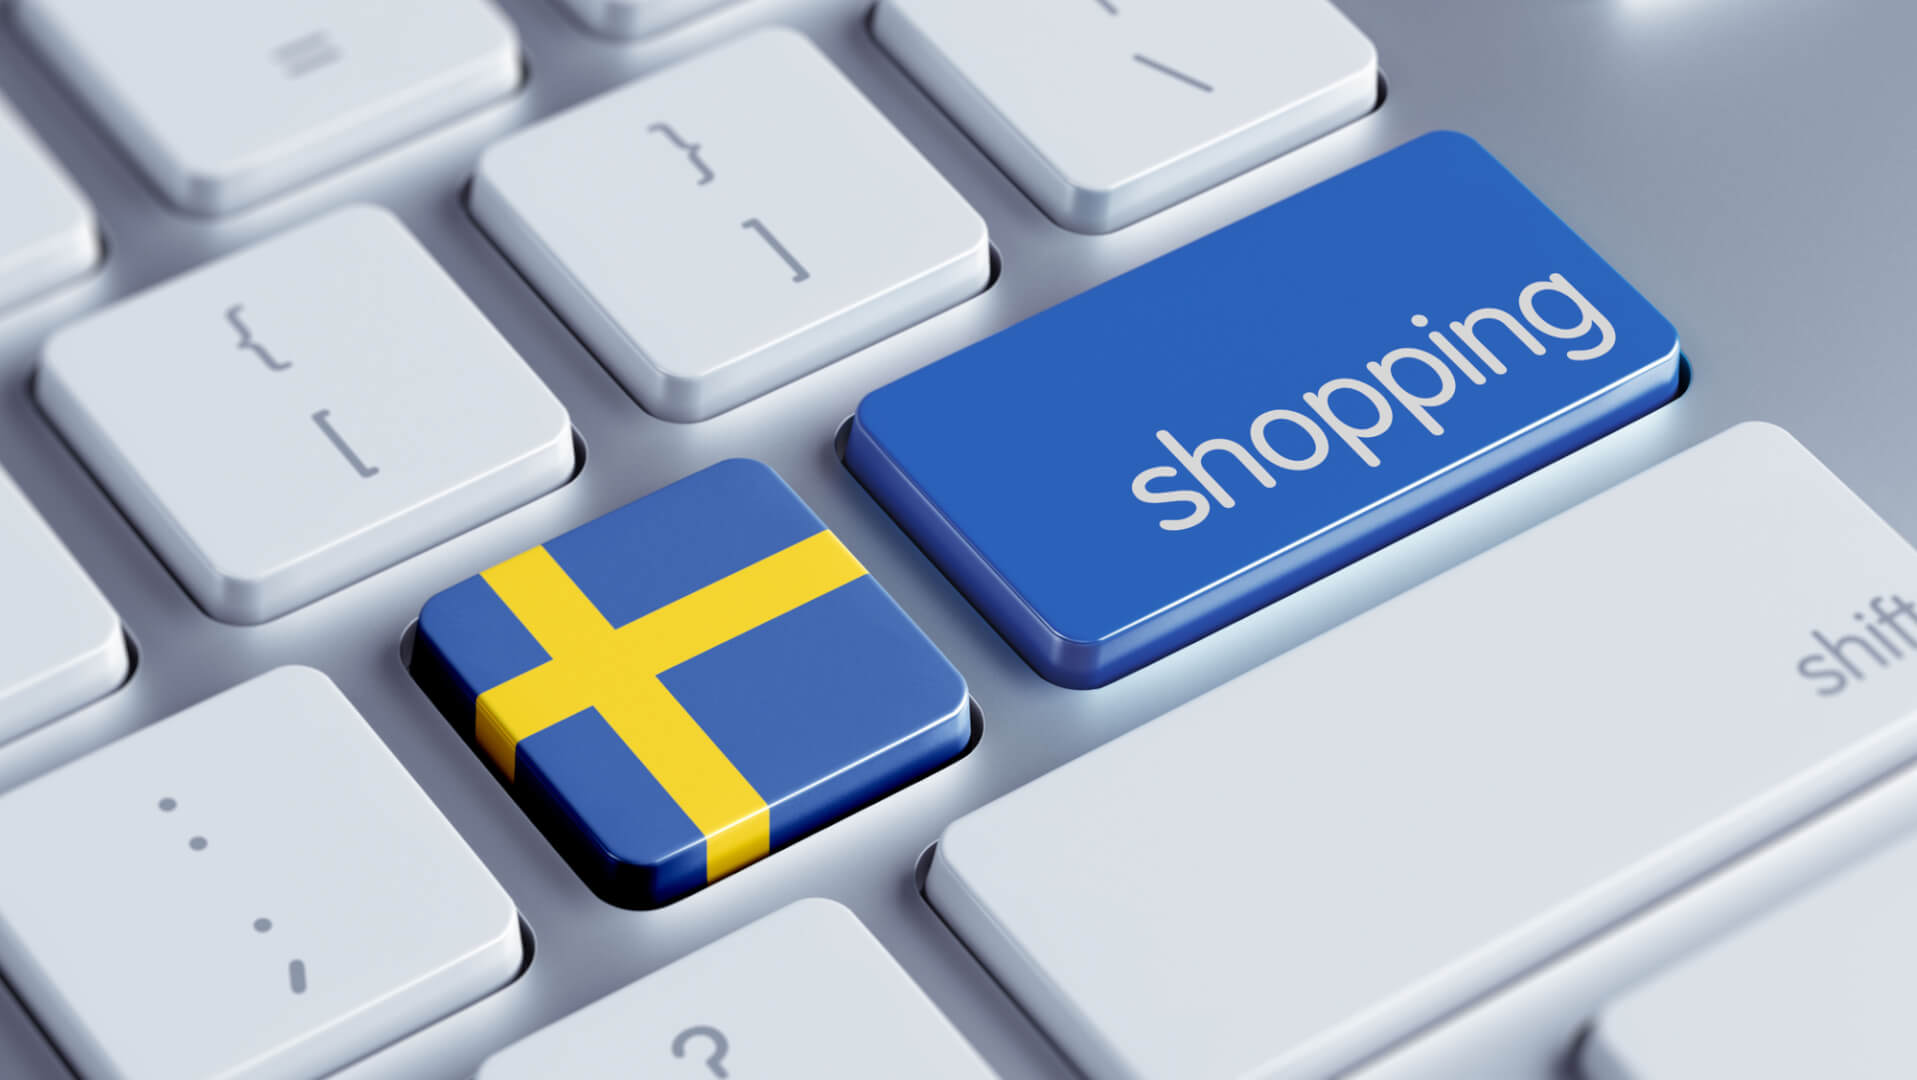 Sverige og shopping